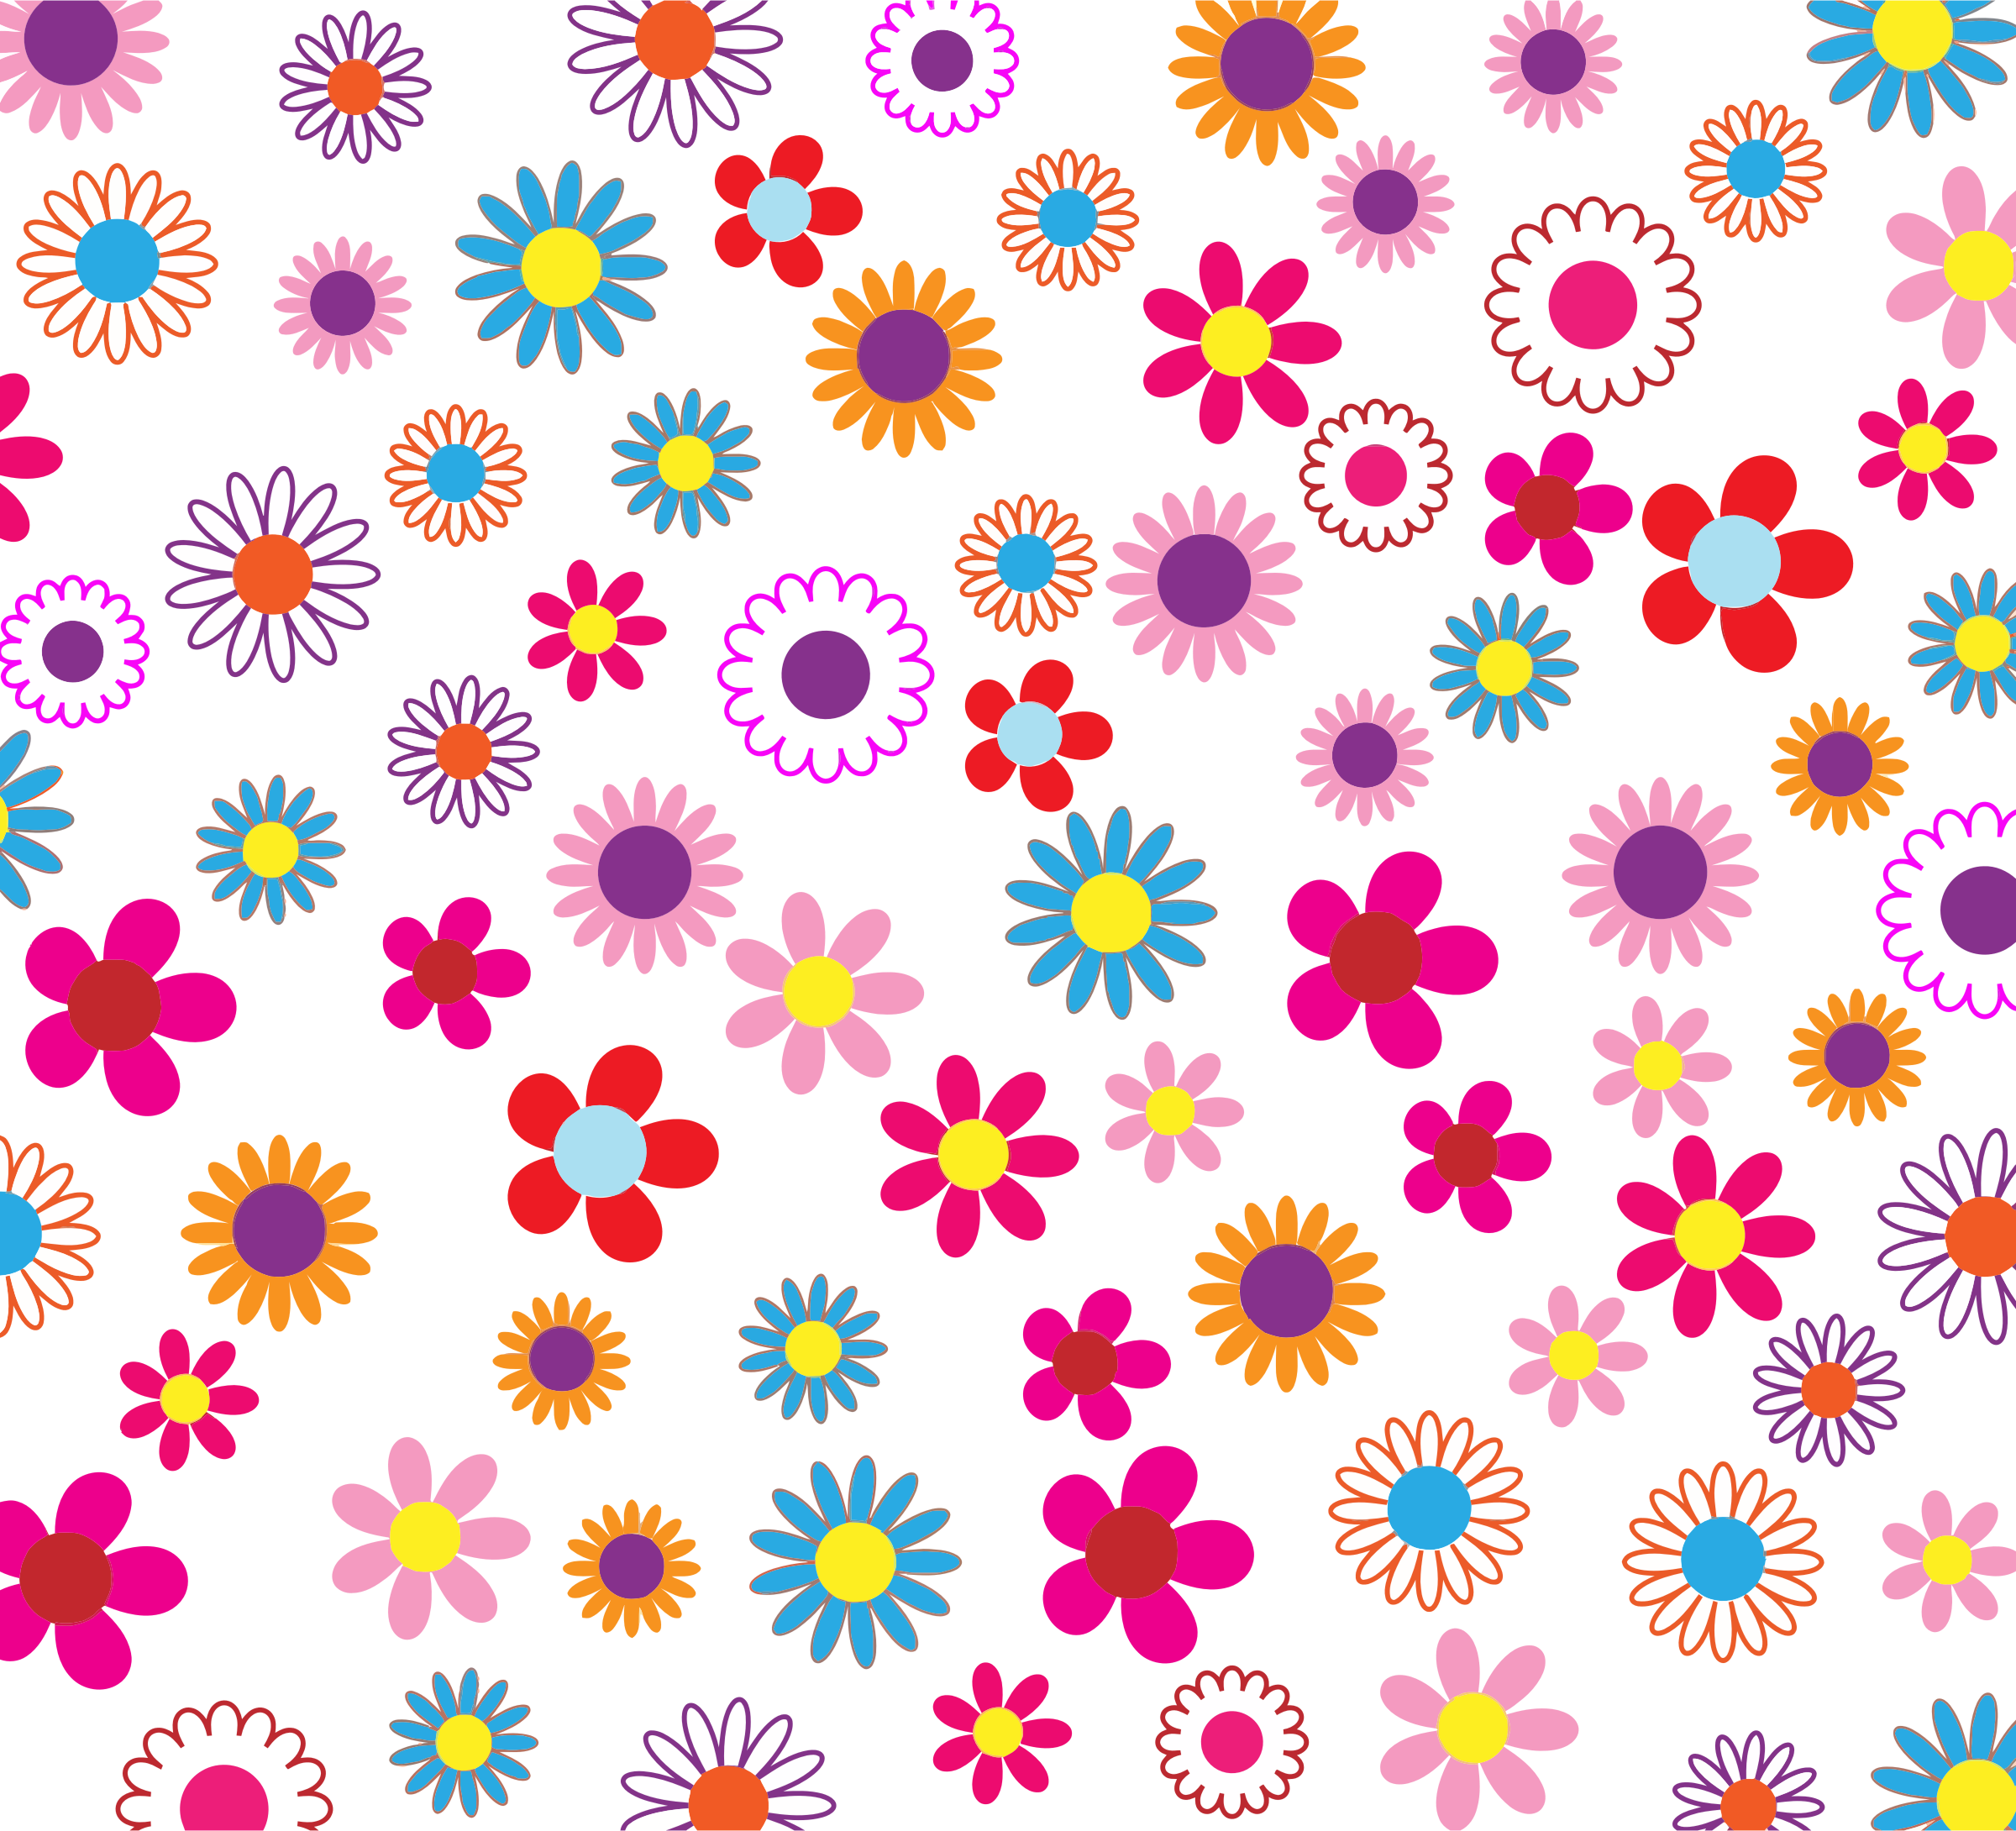 Floral background png. Colorful pattern icons free